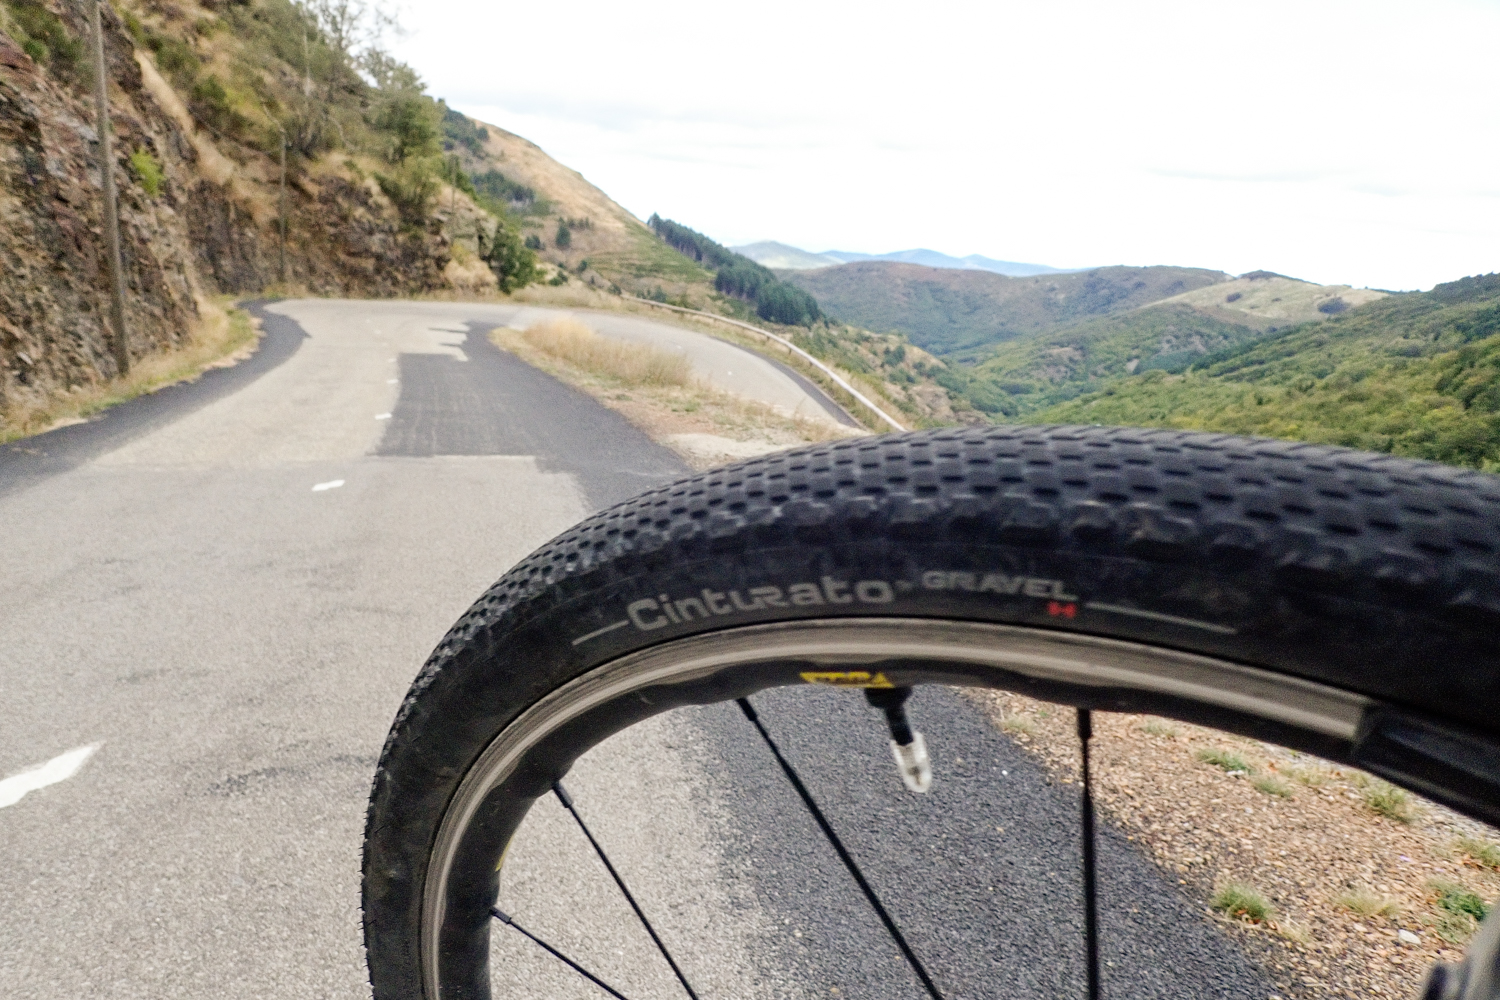 Pirelli Cinturato Gravel H Snaky road tyre tire cycling